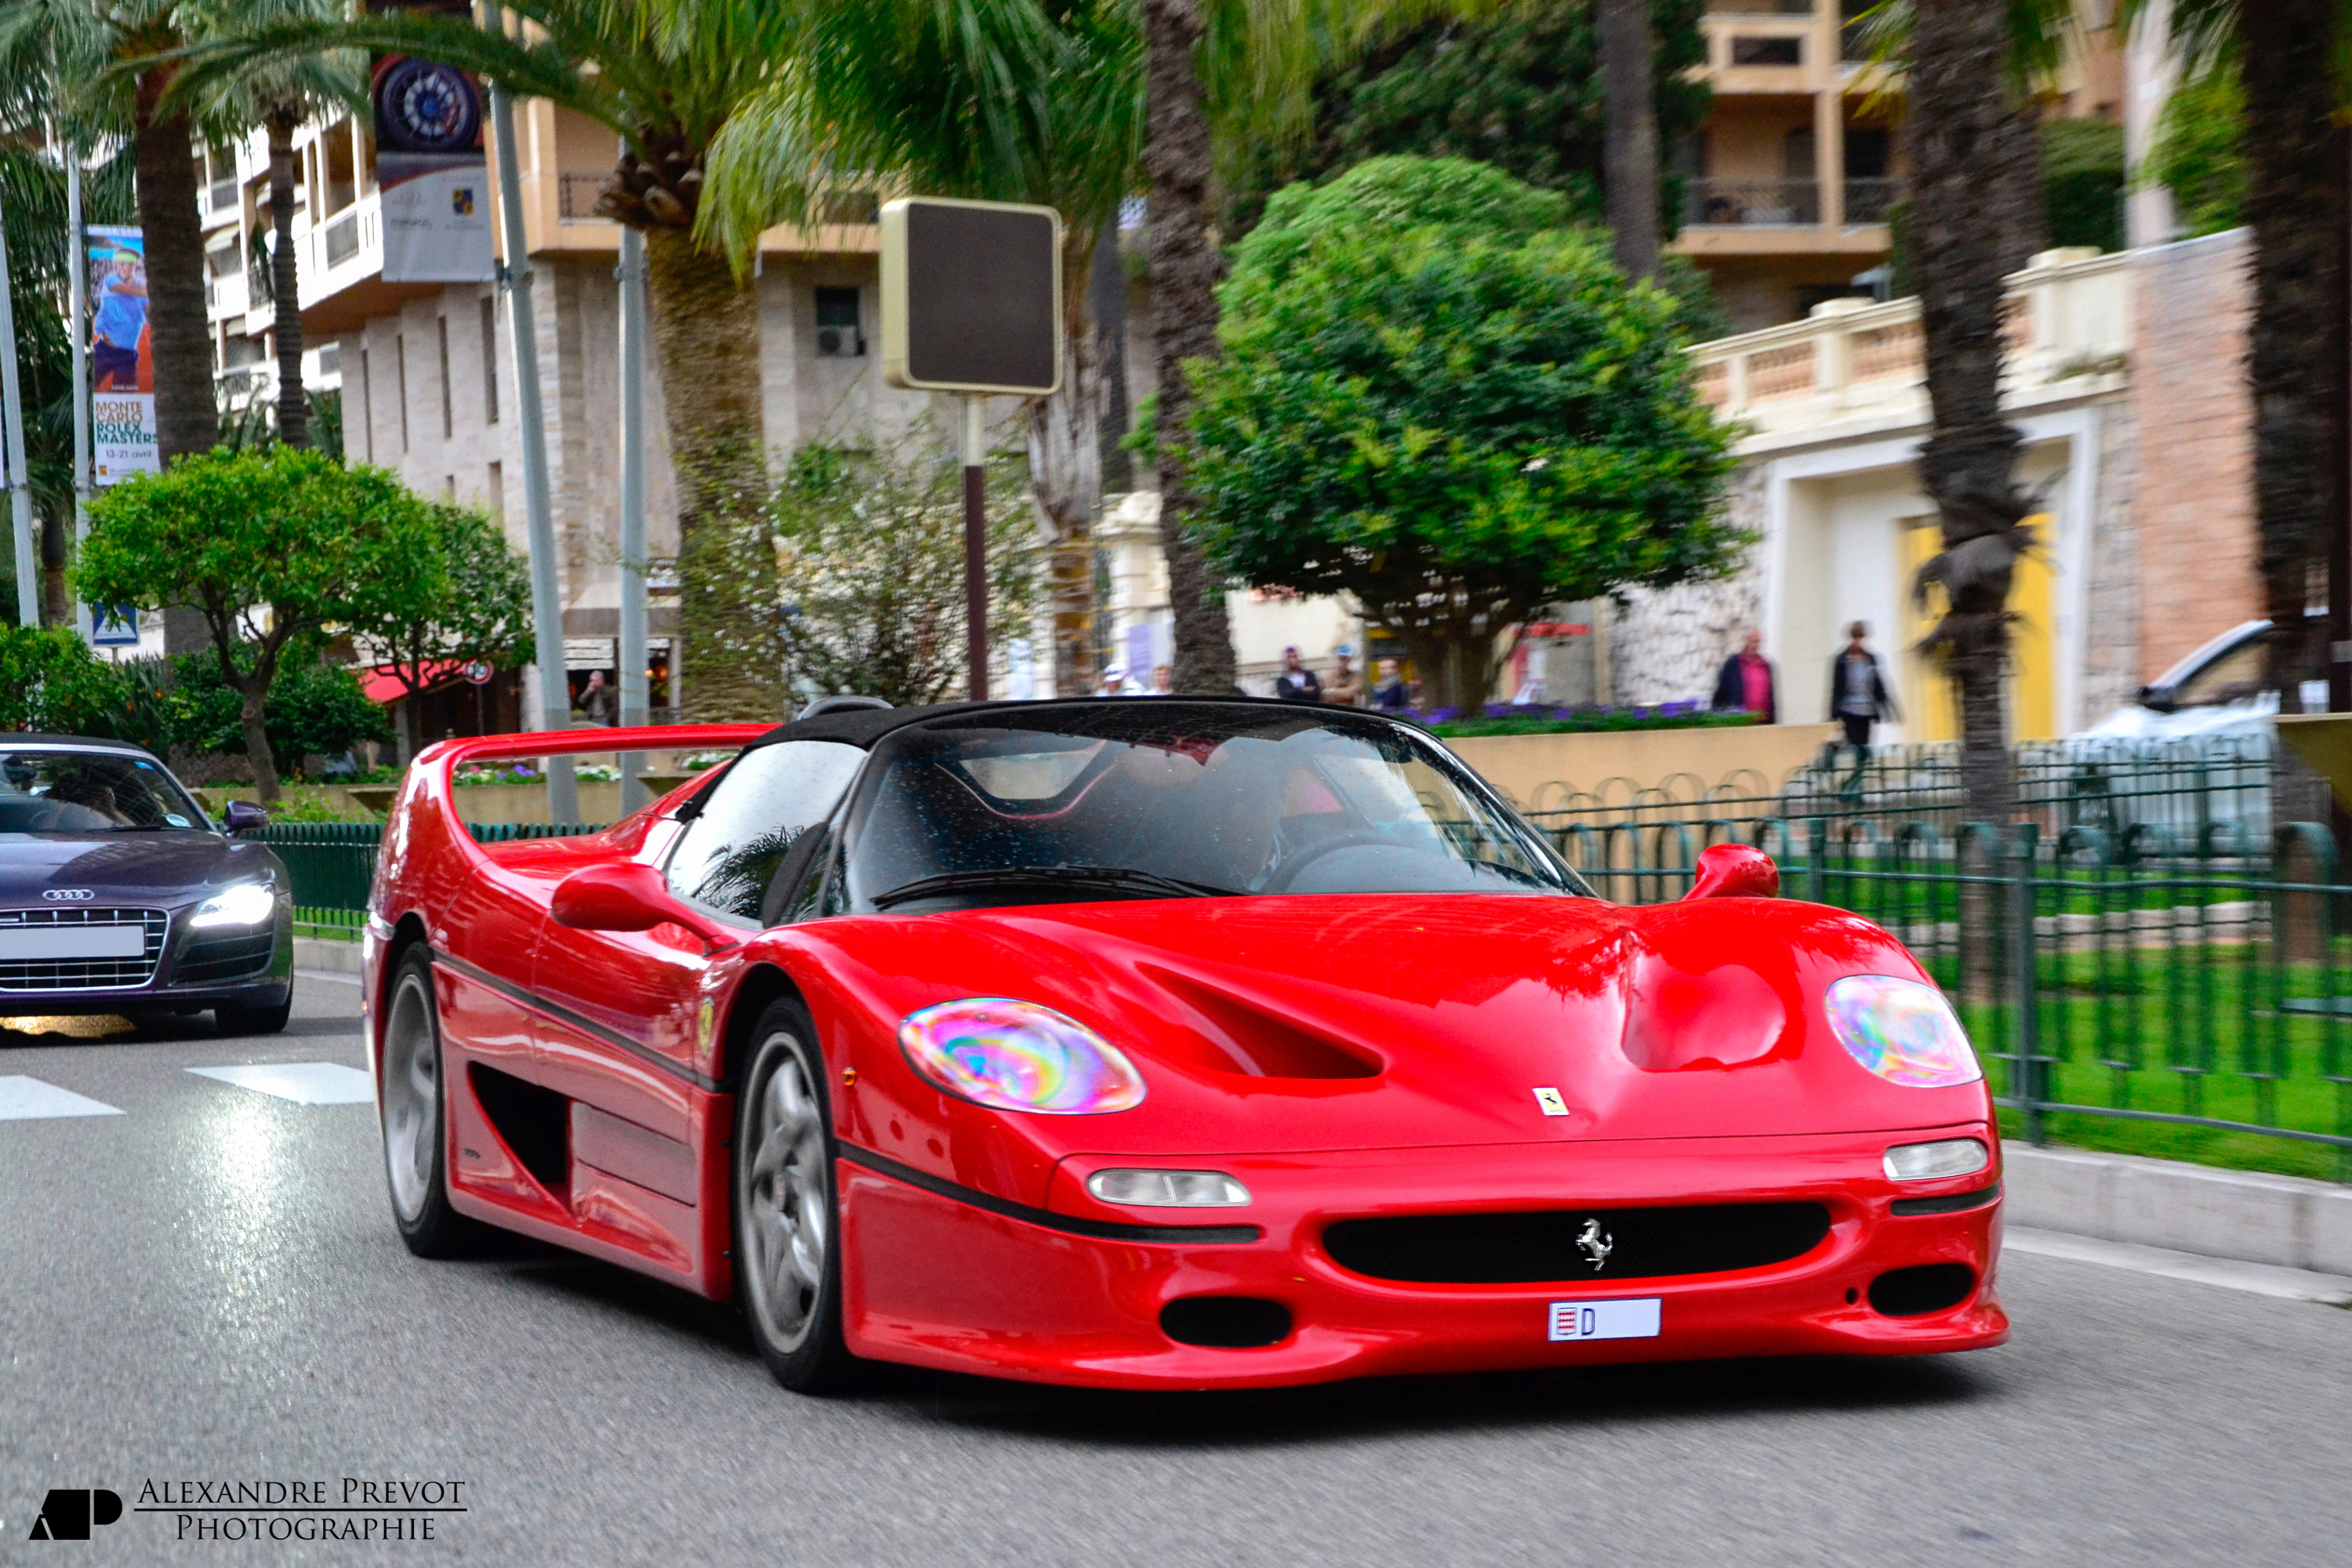 FileFerrari F50 8705895157jpg Wikimedia Commons